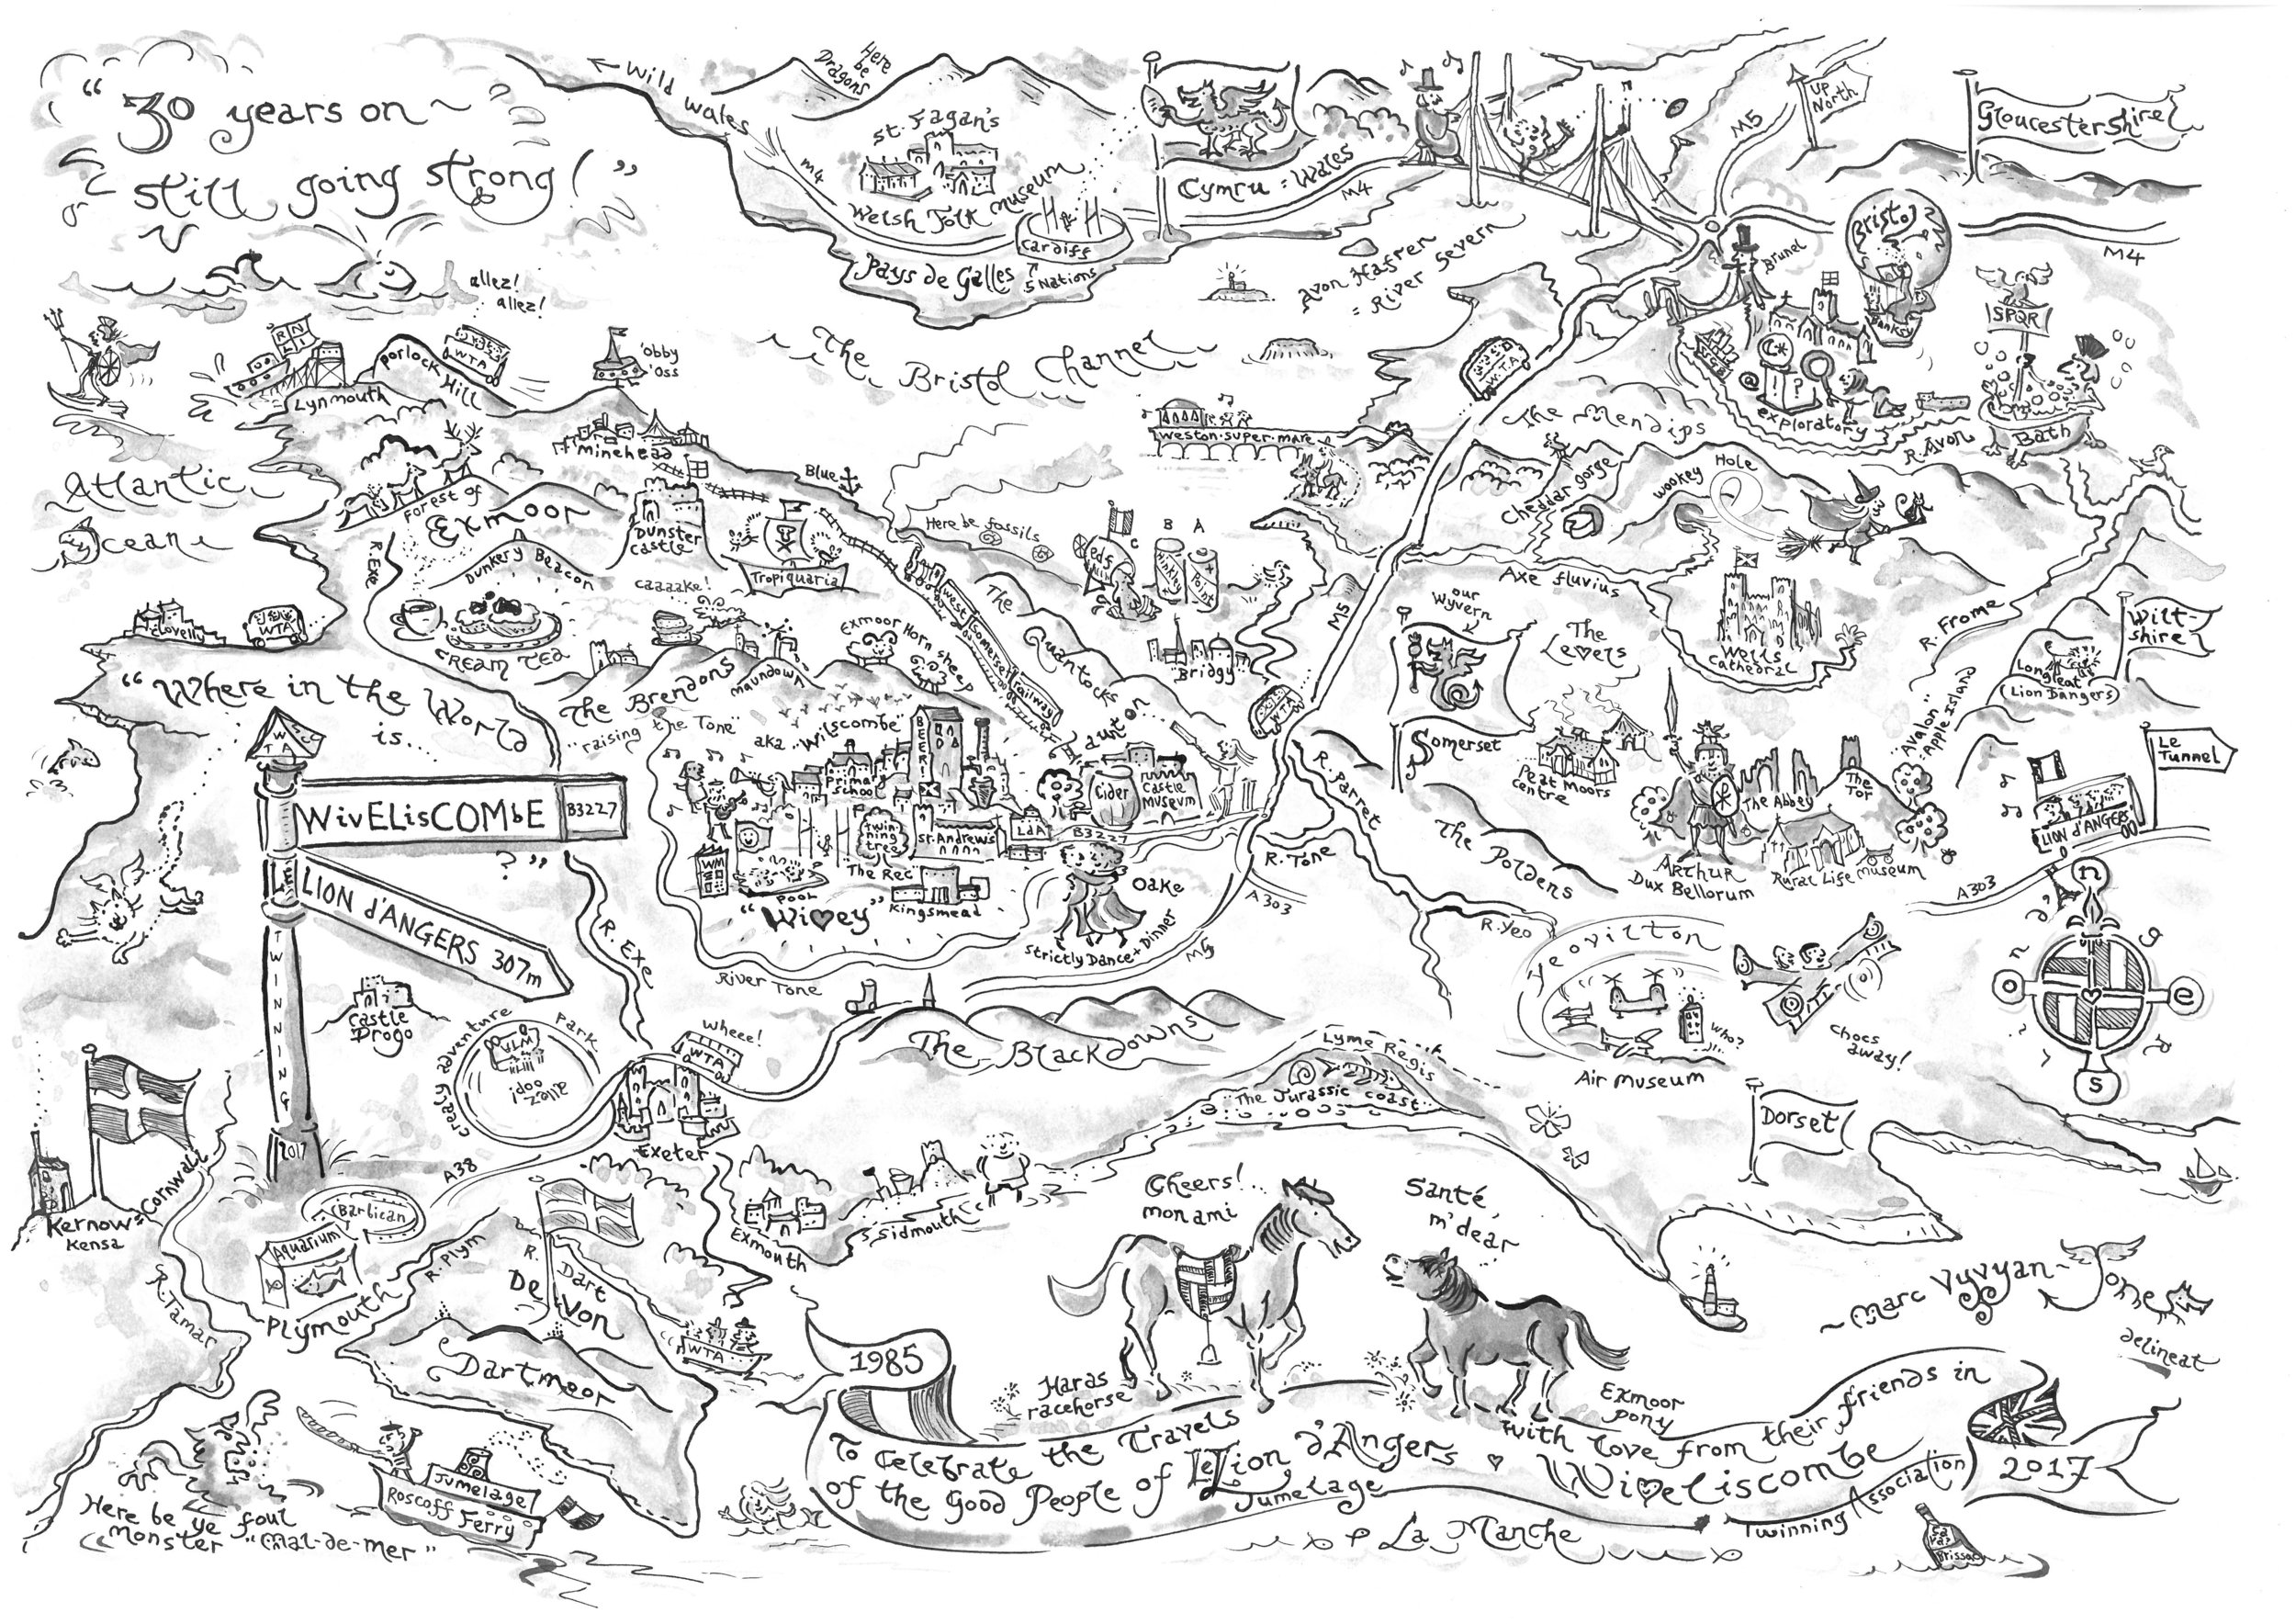 A map of the West Country showing the travels and adventures of the Twinners of Le Lion d'Angers and Wiveliscombe over the decades, included in a commemorative book presented to the French visitors. Working in black ink with a dip pen, and using a brush to create a wash is a satisfying alternative to using colour.